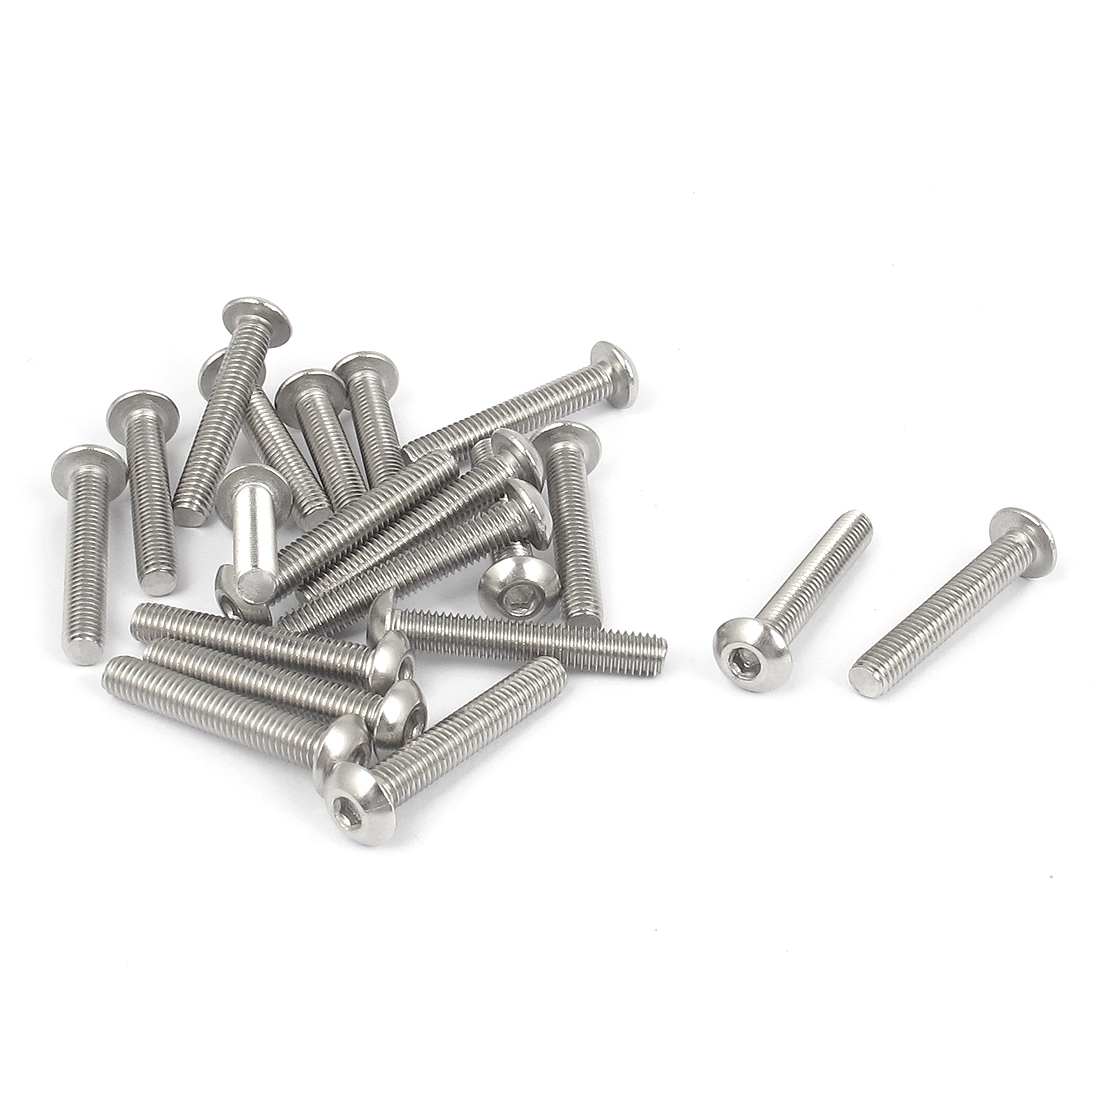 M5x30mm 304 Stainless Steel Hex Socket Machine Countersunk Round Head Screw Bolts 20PCS